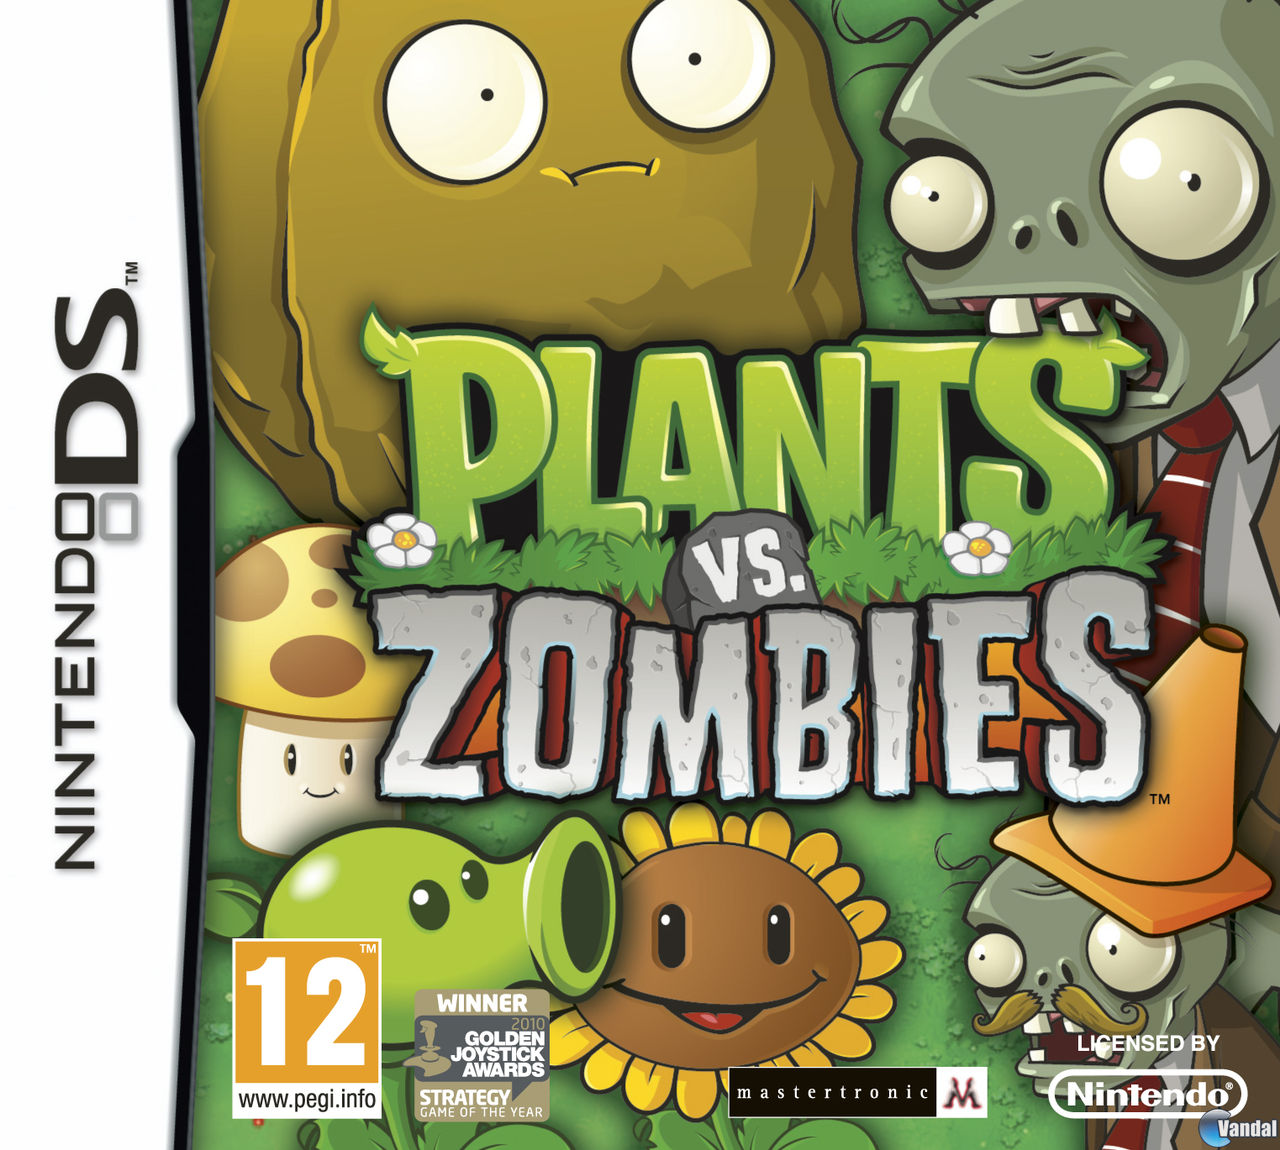 descargar Plantas vs Zombies para nintendo ds